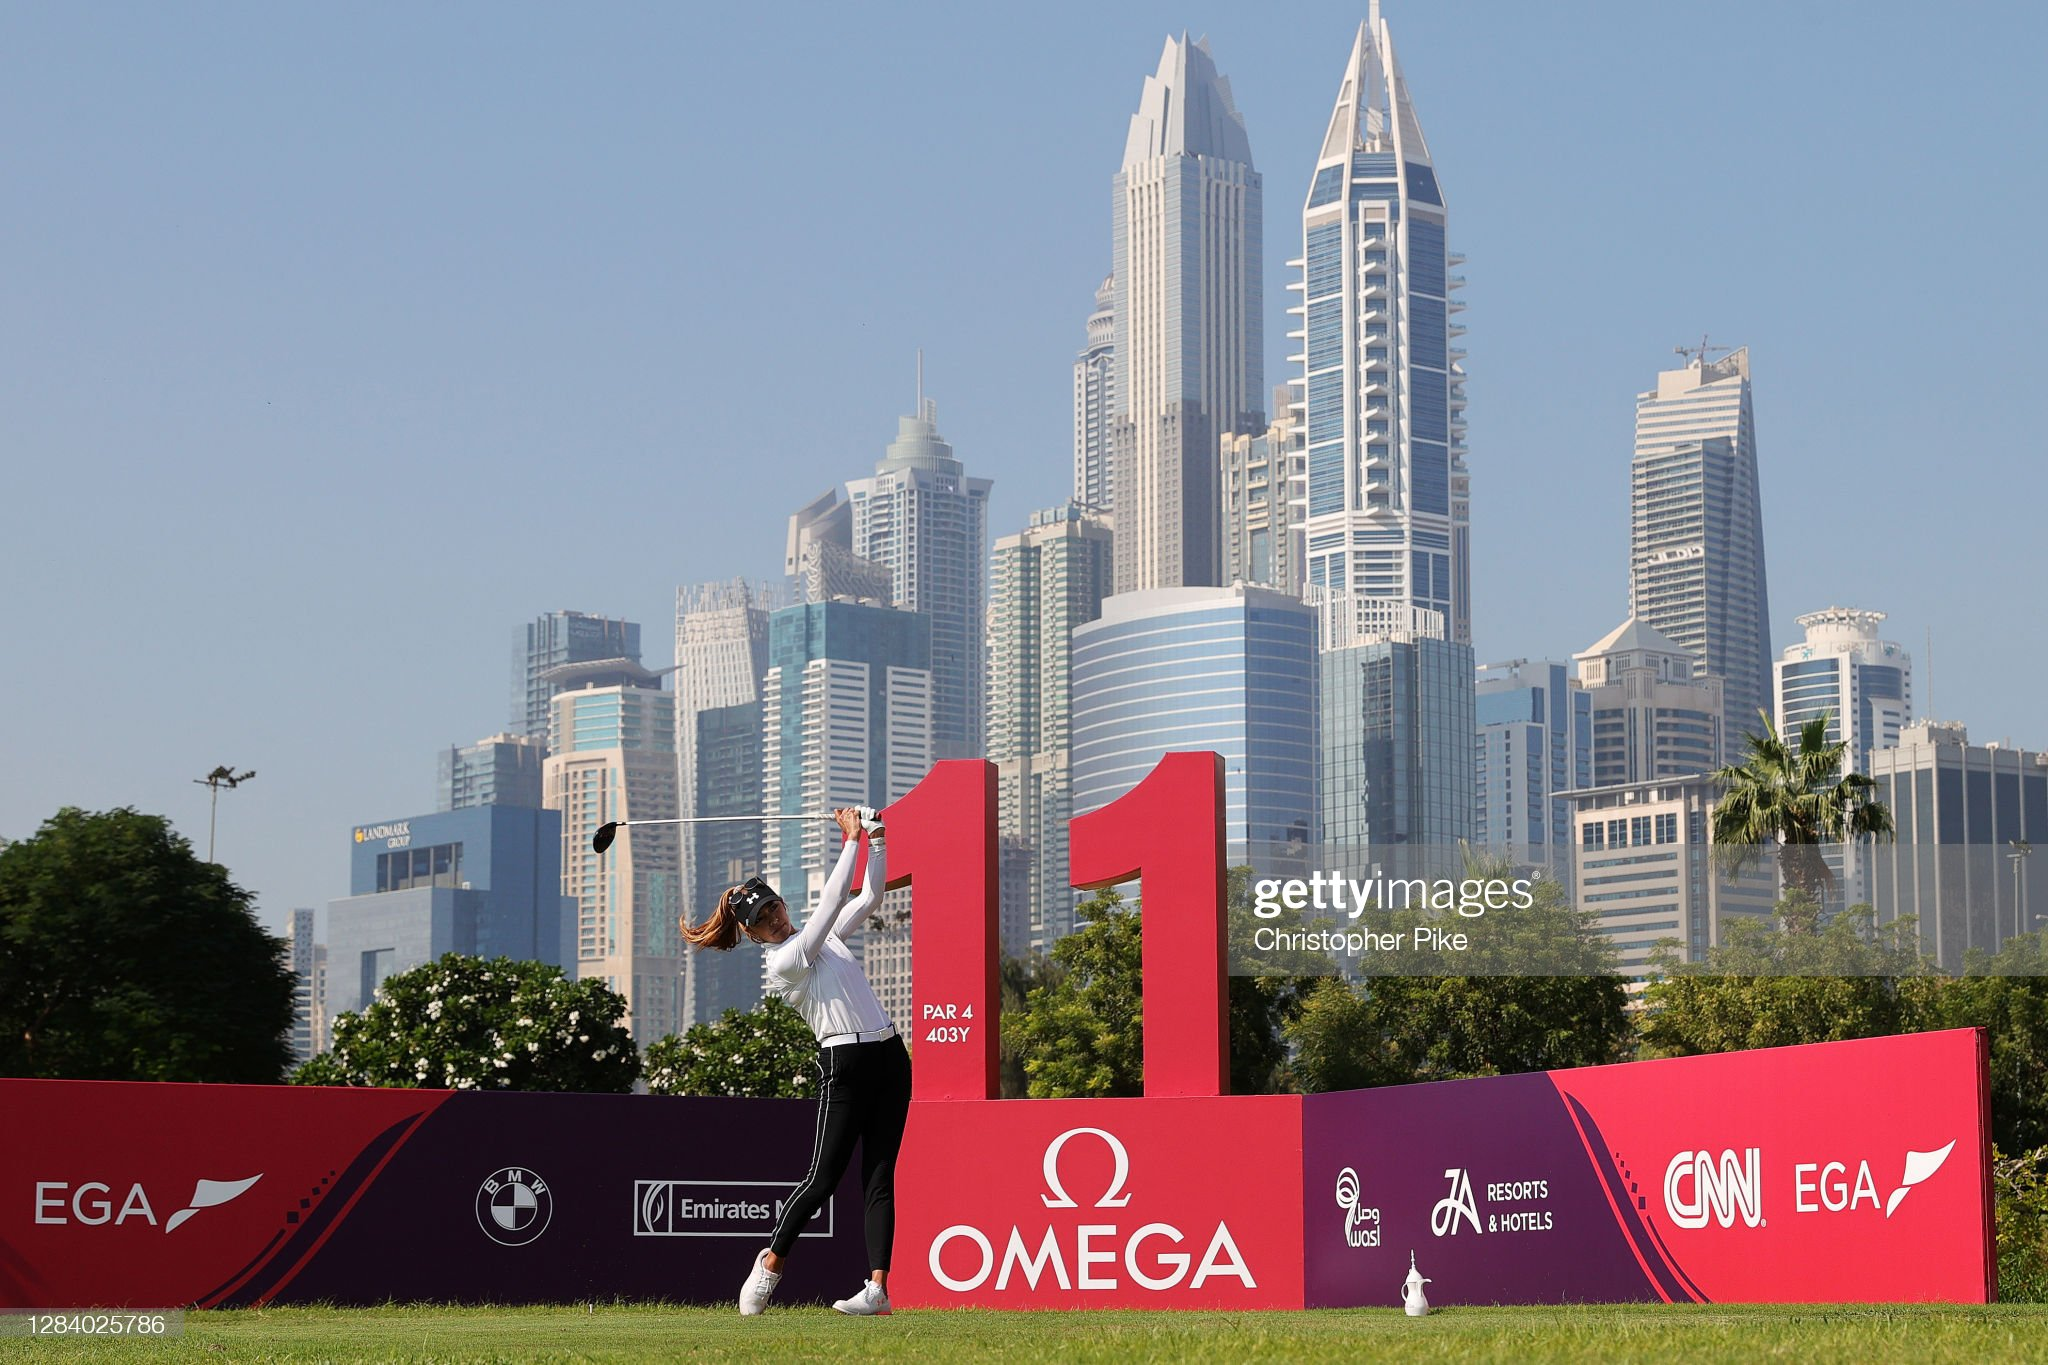 https://media.gettyimages.com/photos/alison-lee-of-usa-plays-her-tee-shot-on-the-11th-hole-during-day-two-picture-id1284025786?s=2048x2048